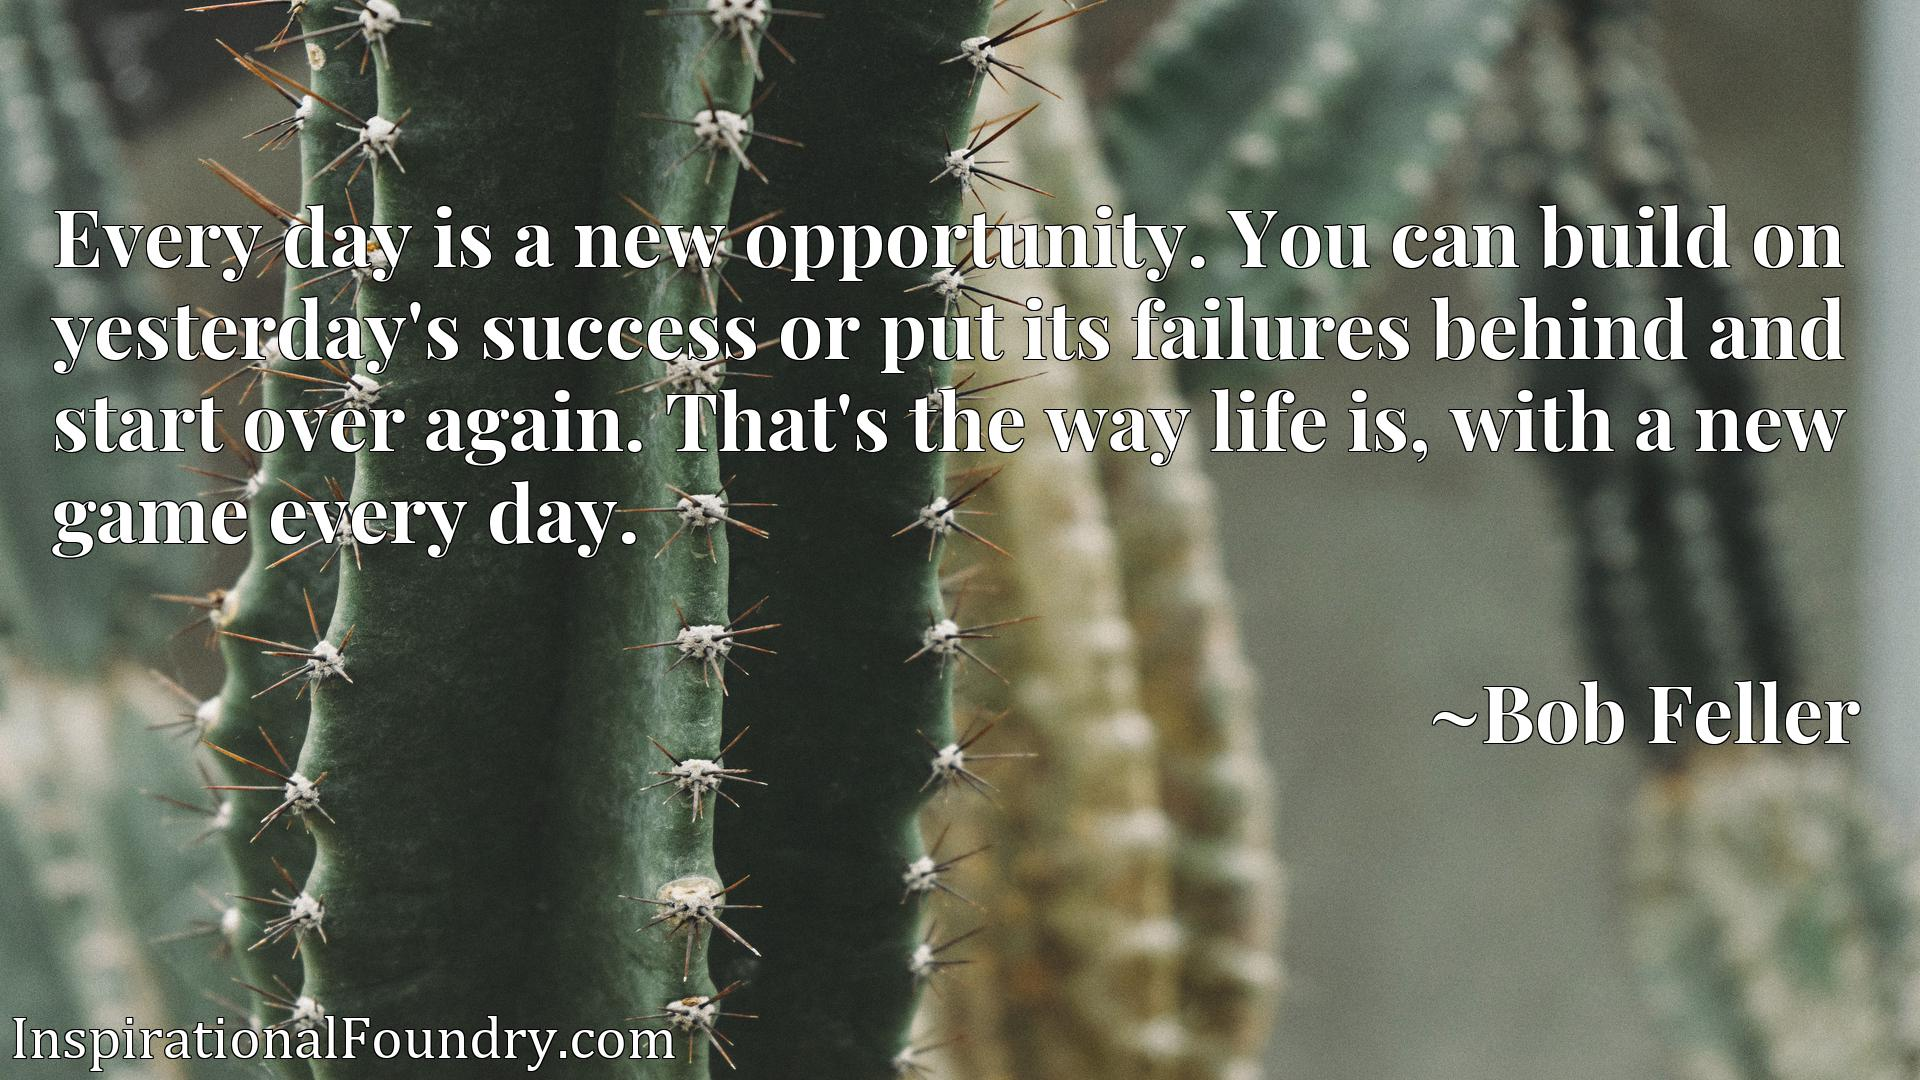 Every day is a new opportunity. You can build on yesterday's success or put its failures behind and start over again. That's the way life is, with a new game every day.